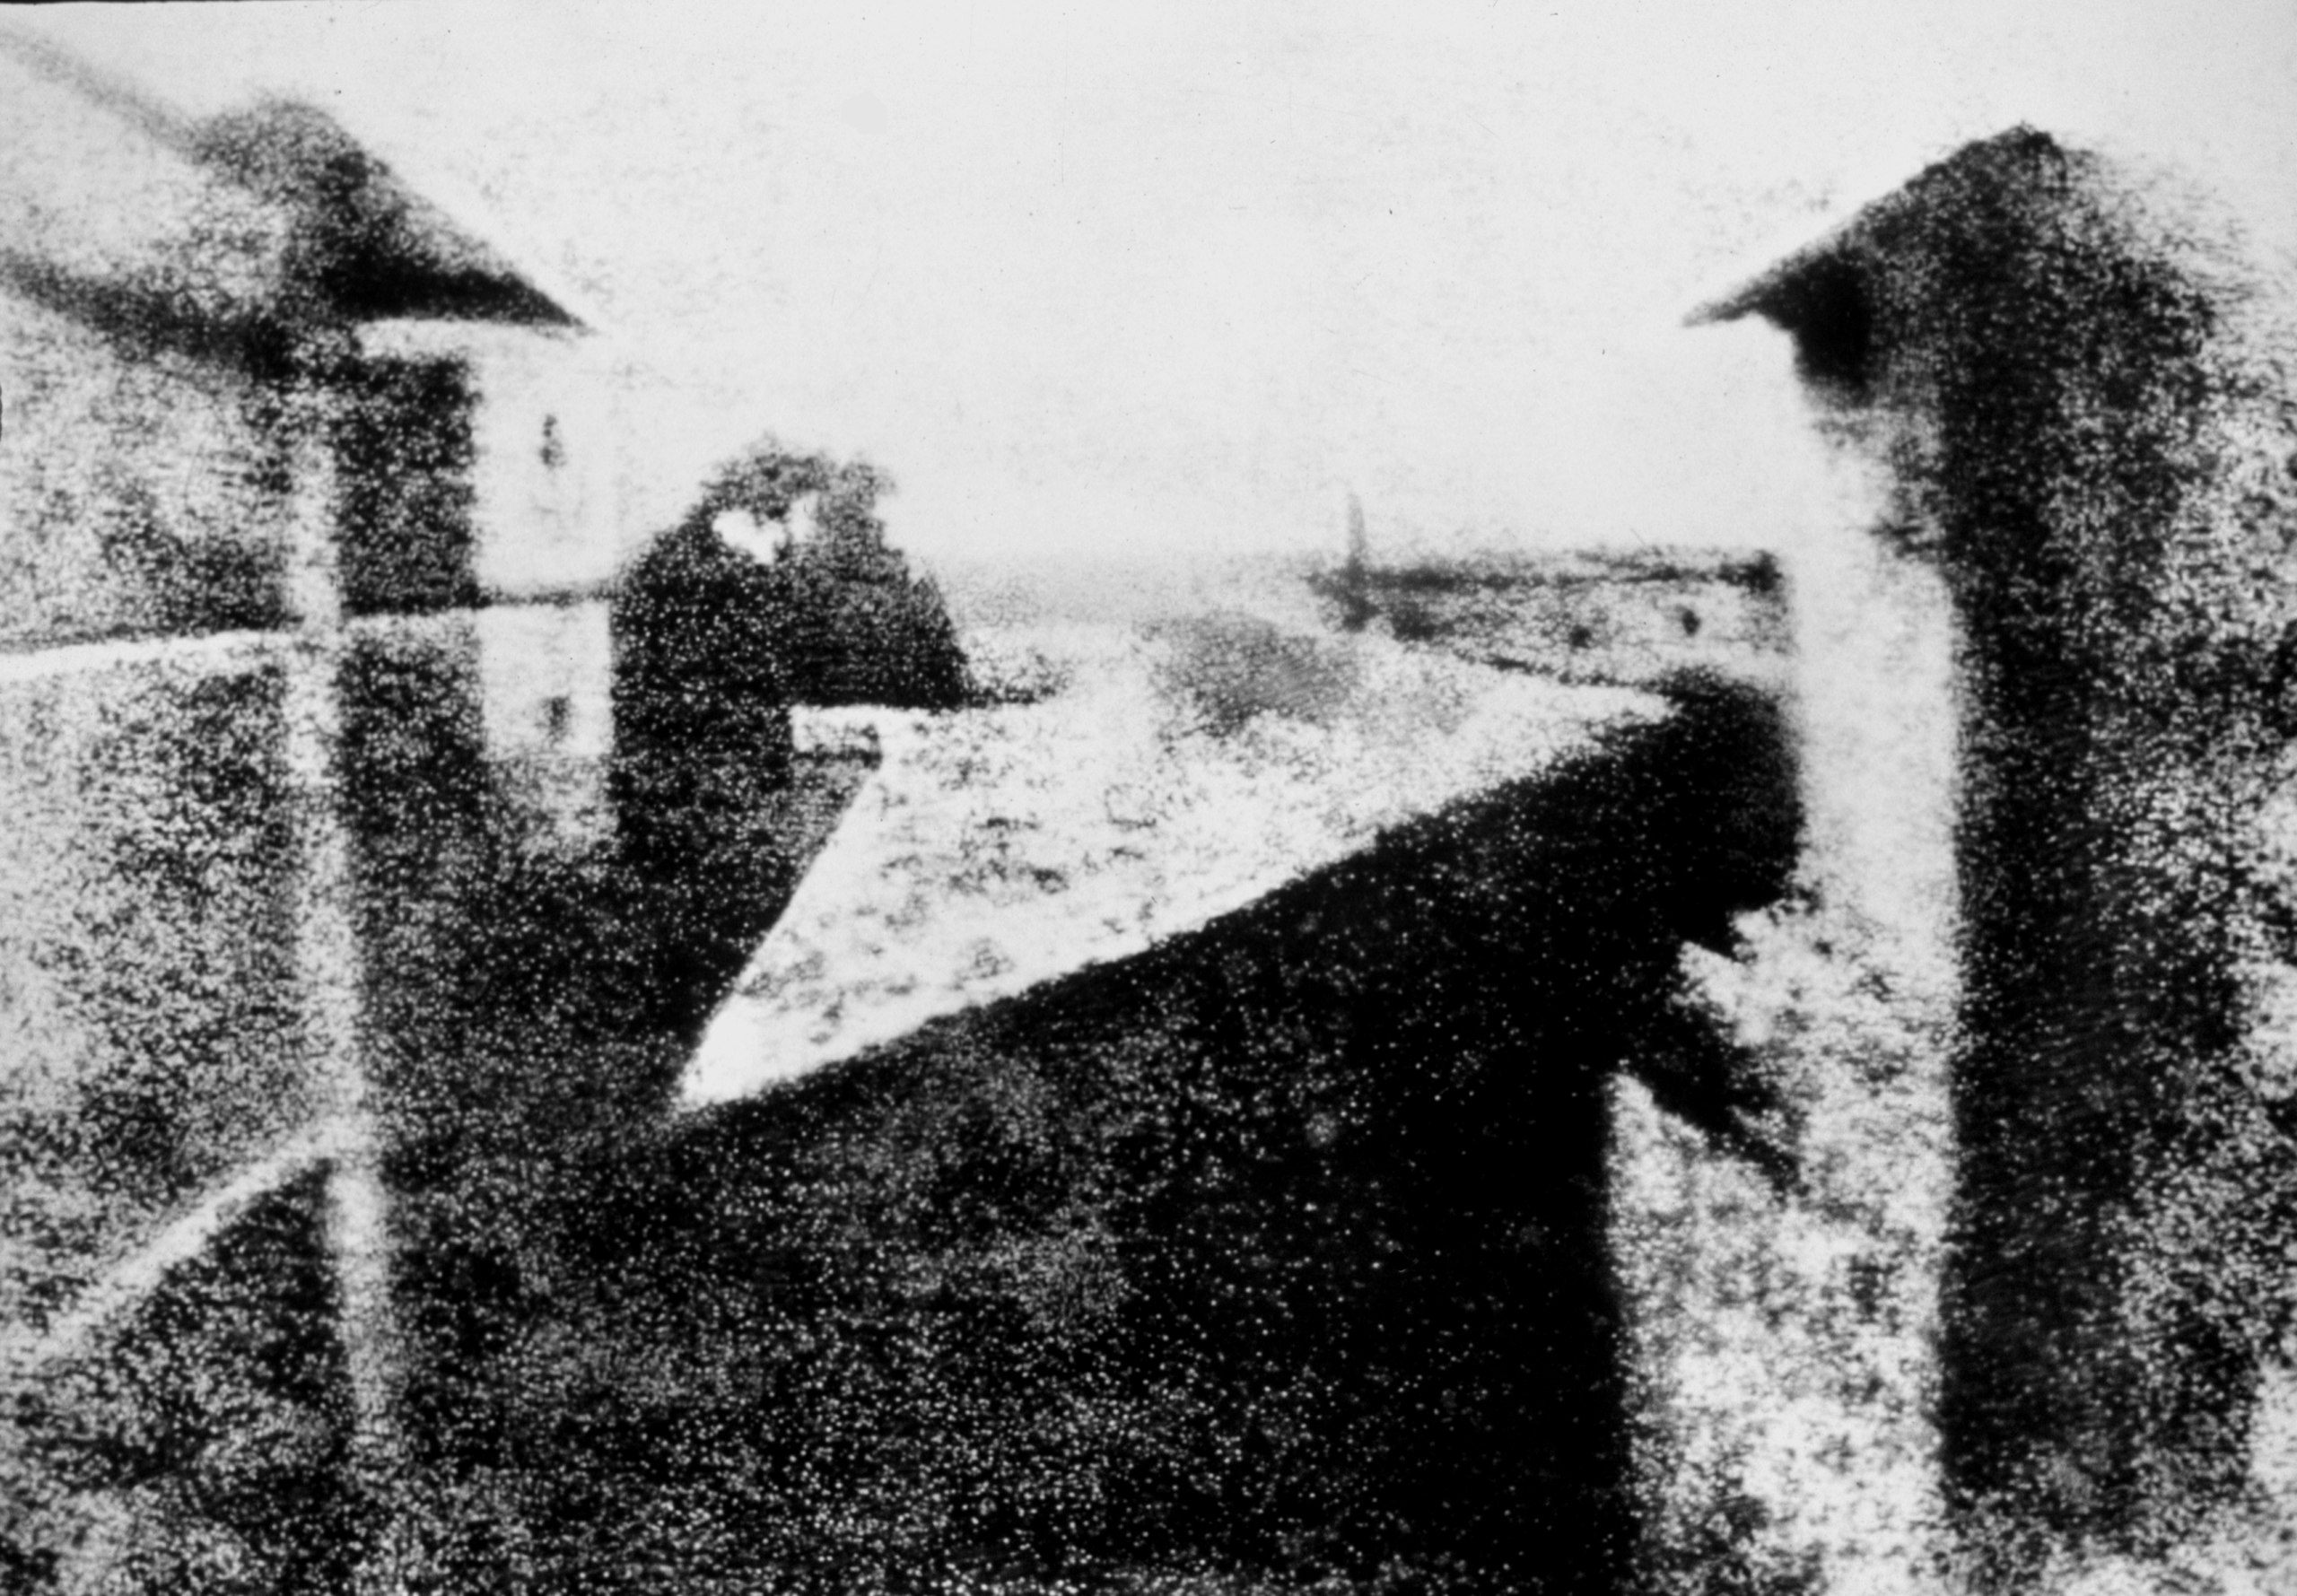 This is the first known image taken: Joseph Nicéphore Niépce's View from the Window at Le Gras, (Harry Ransom Humanities Research Center, University of Texas, Austin). Niépce captured the scene with a camera obscura focused onto a 16.2 cm × 20.2 cm (6.4 in × 8.0 in) pewter plate thinly coated with Bitumen of Judea, a naturally occurring asphalt. The bitumen hardened in the brightly lit areas, but in the dimly lit areas it remained soluble and could be washed away with a mixture of oil of lavender and white petroleum. A very long exposure in the camera was required. Sunlight strikes the buildings on opposite sides, suggesting an exposure that lasted about eight hours, which has become the traditional estimate. A researcher who studied Niépce's notes and recreated his processes found that the exposure must have continued for several days.